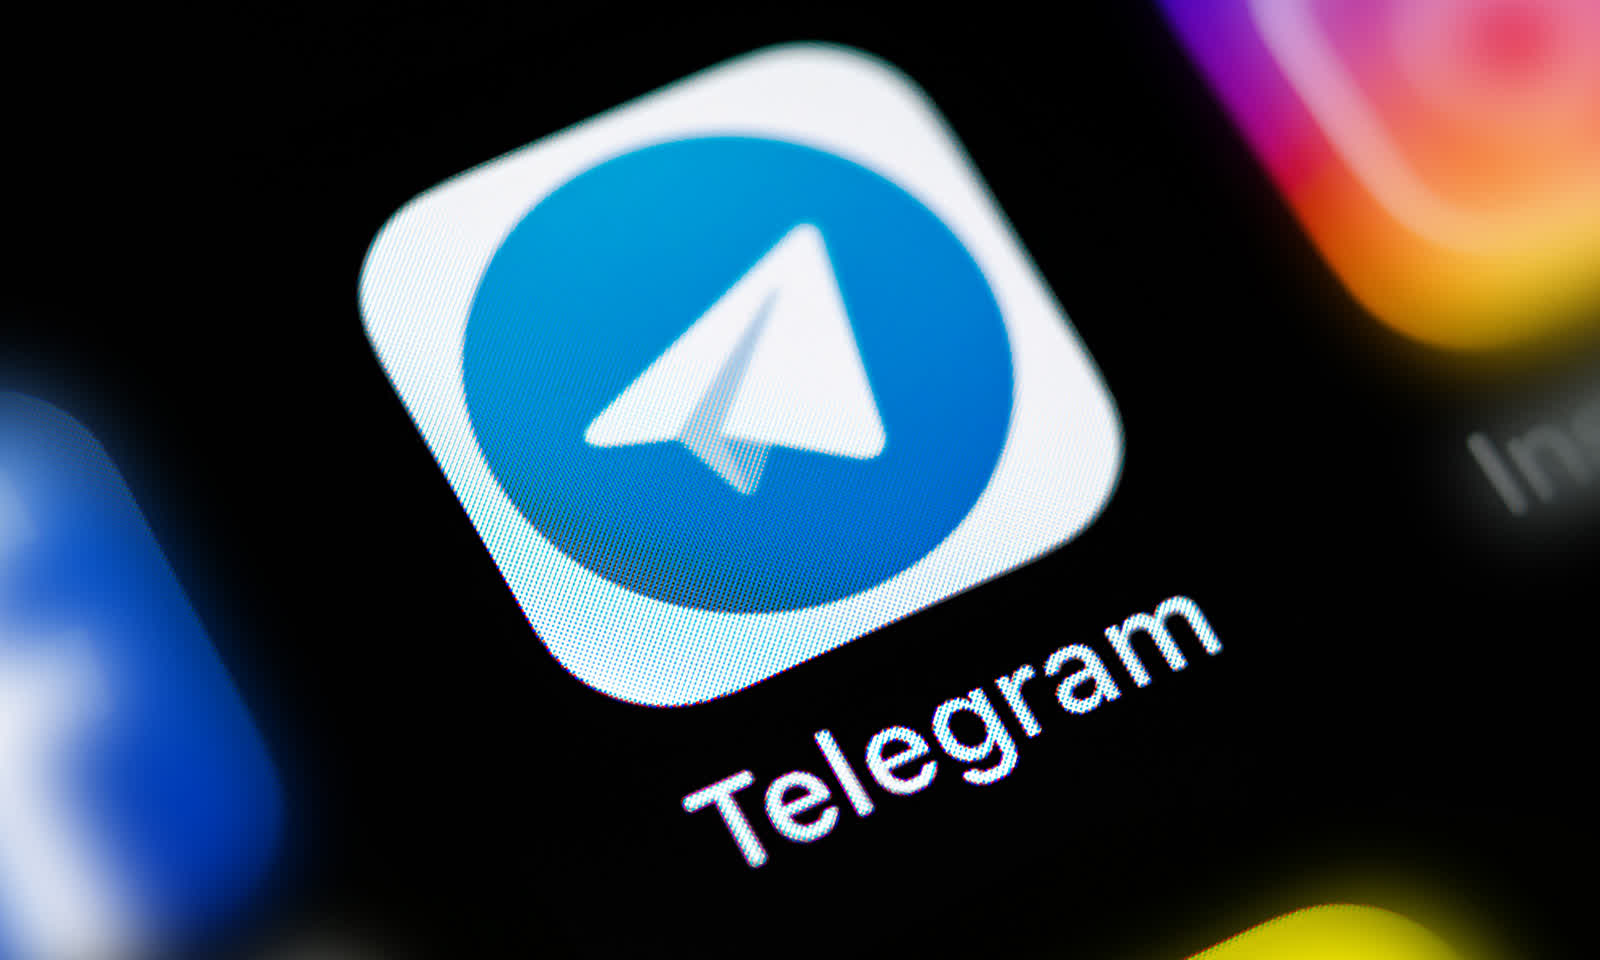 Telegram summed 70M new users in a single day thanks to Facebook outage